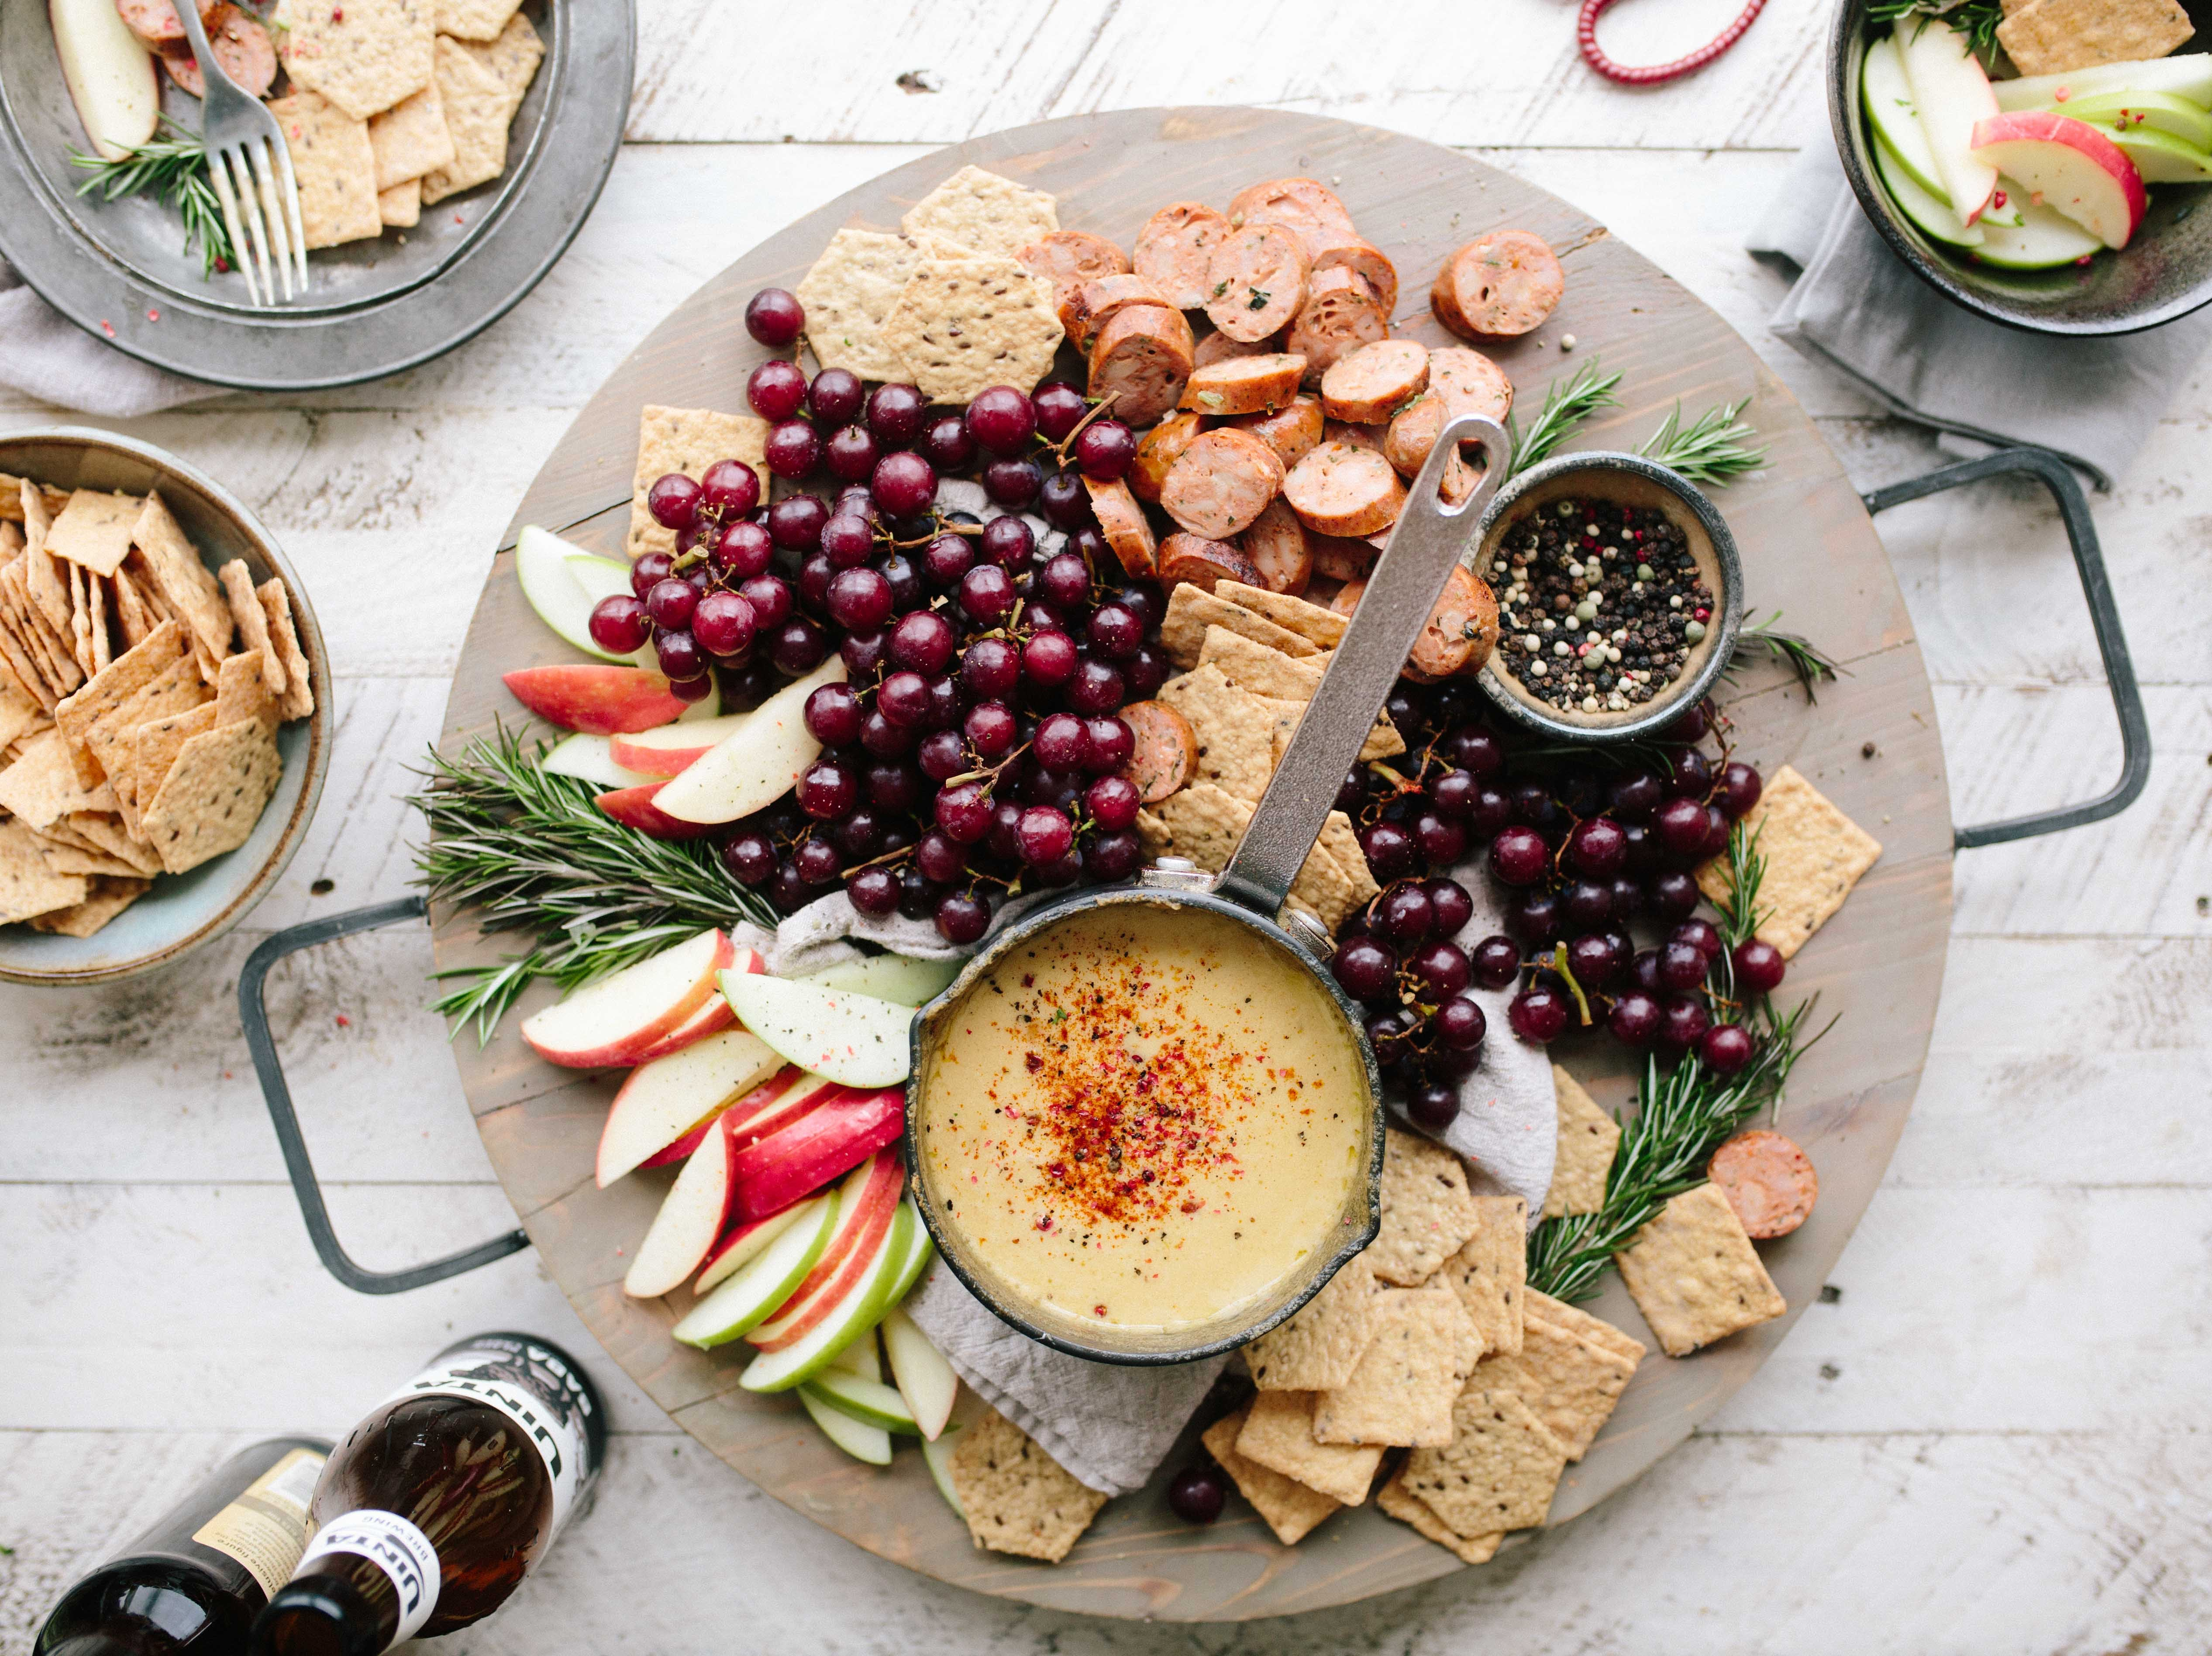 A room temp appetizer you can serve to save fridge and oven space - 10 helpful tips for bringing food to a dinner party